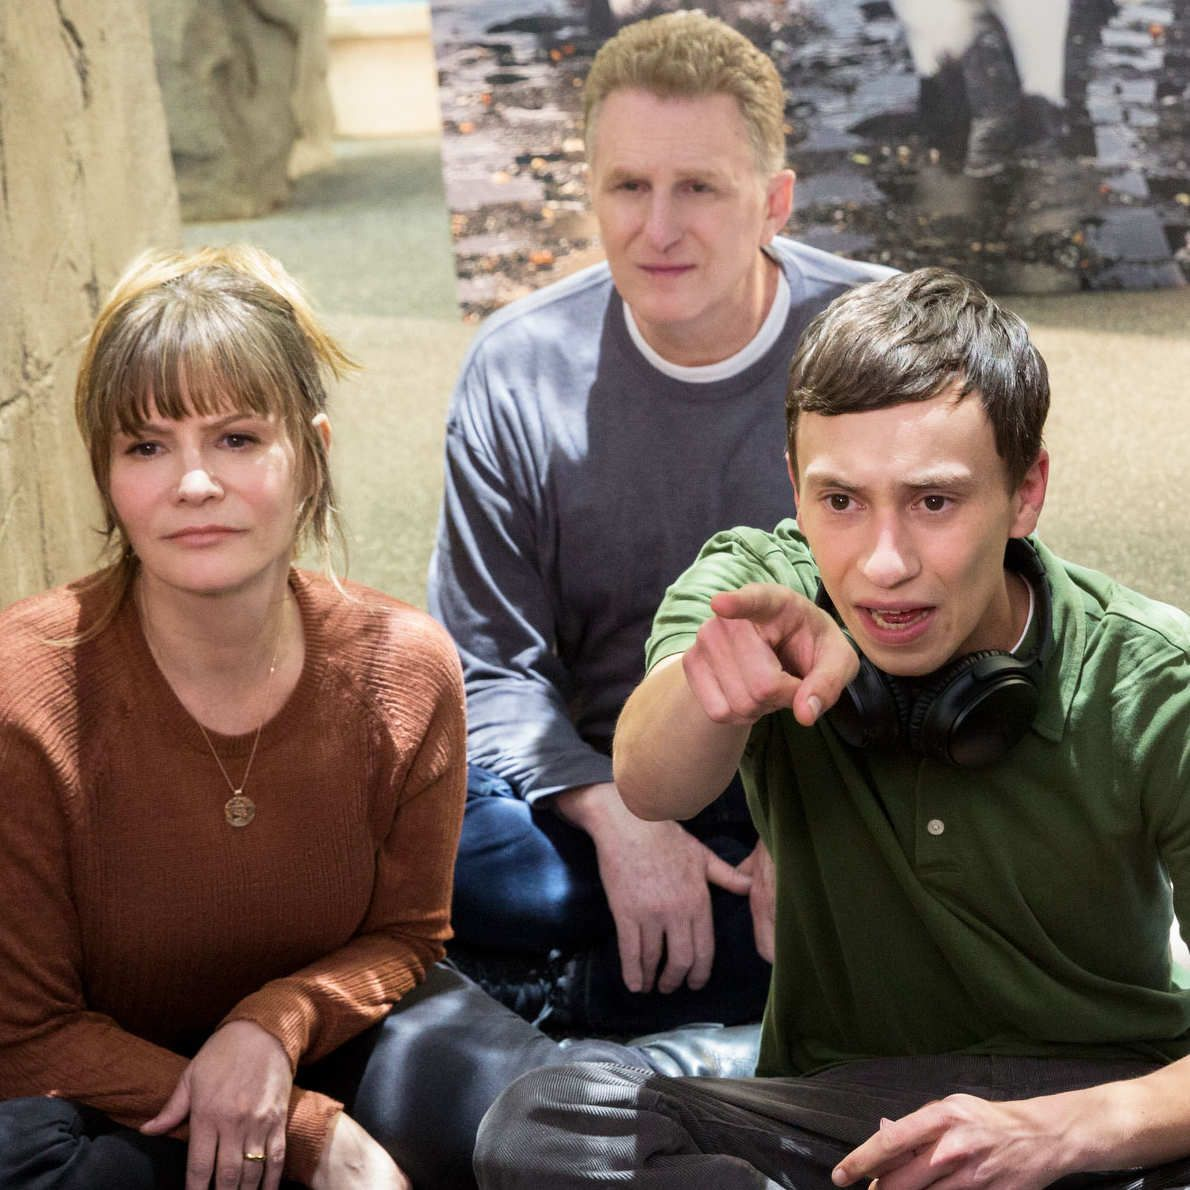 Atypical Season 2 Widens Its Perspective, But Loses Some